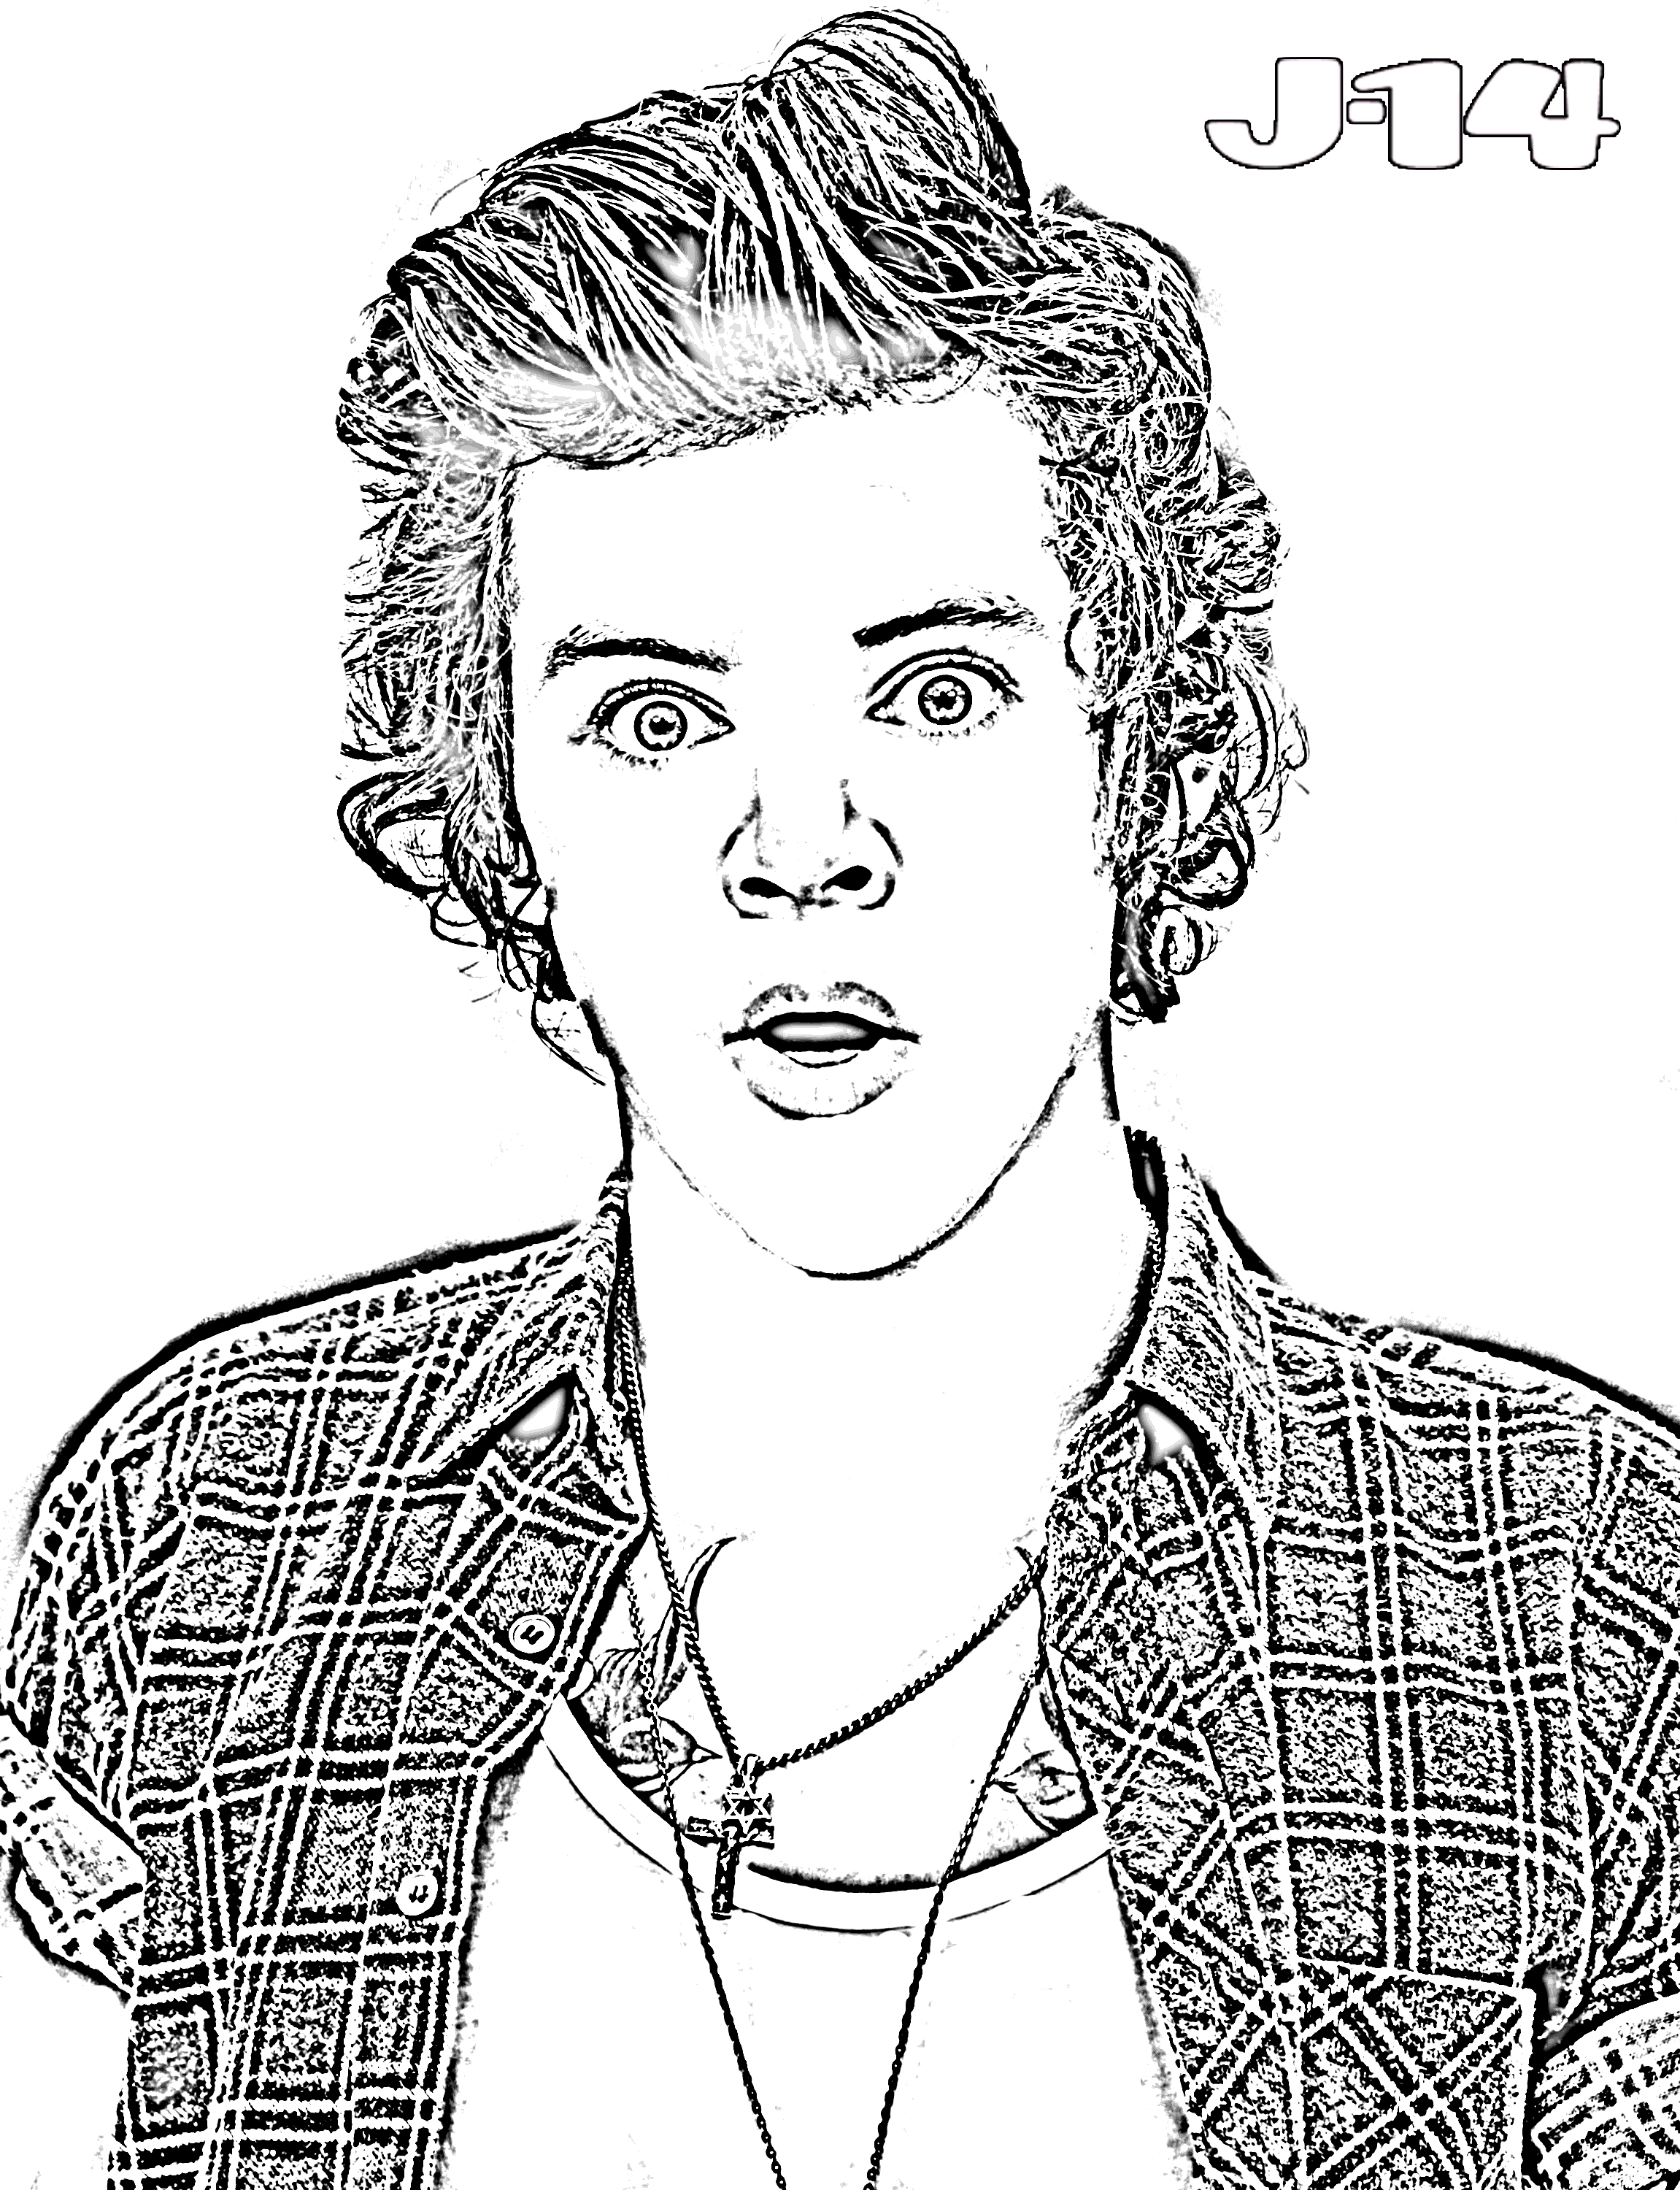 Free coloring sheets justin bieber - Justin Bieber Coloring Pages